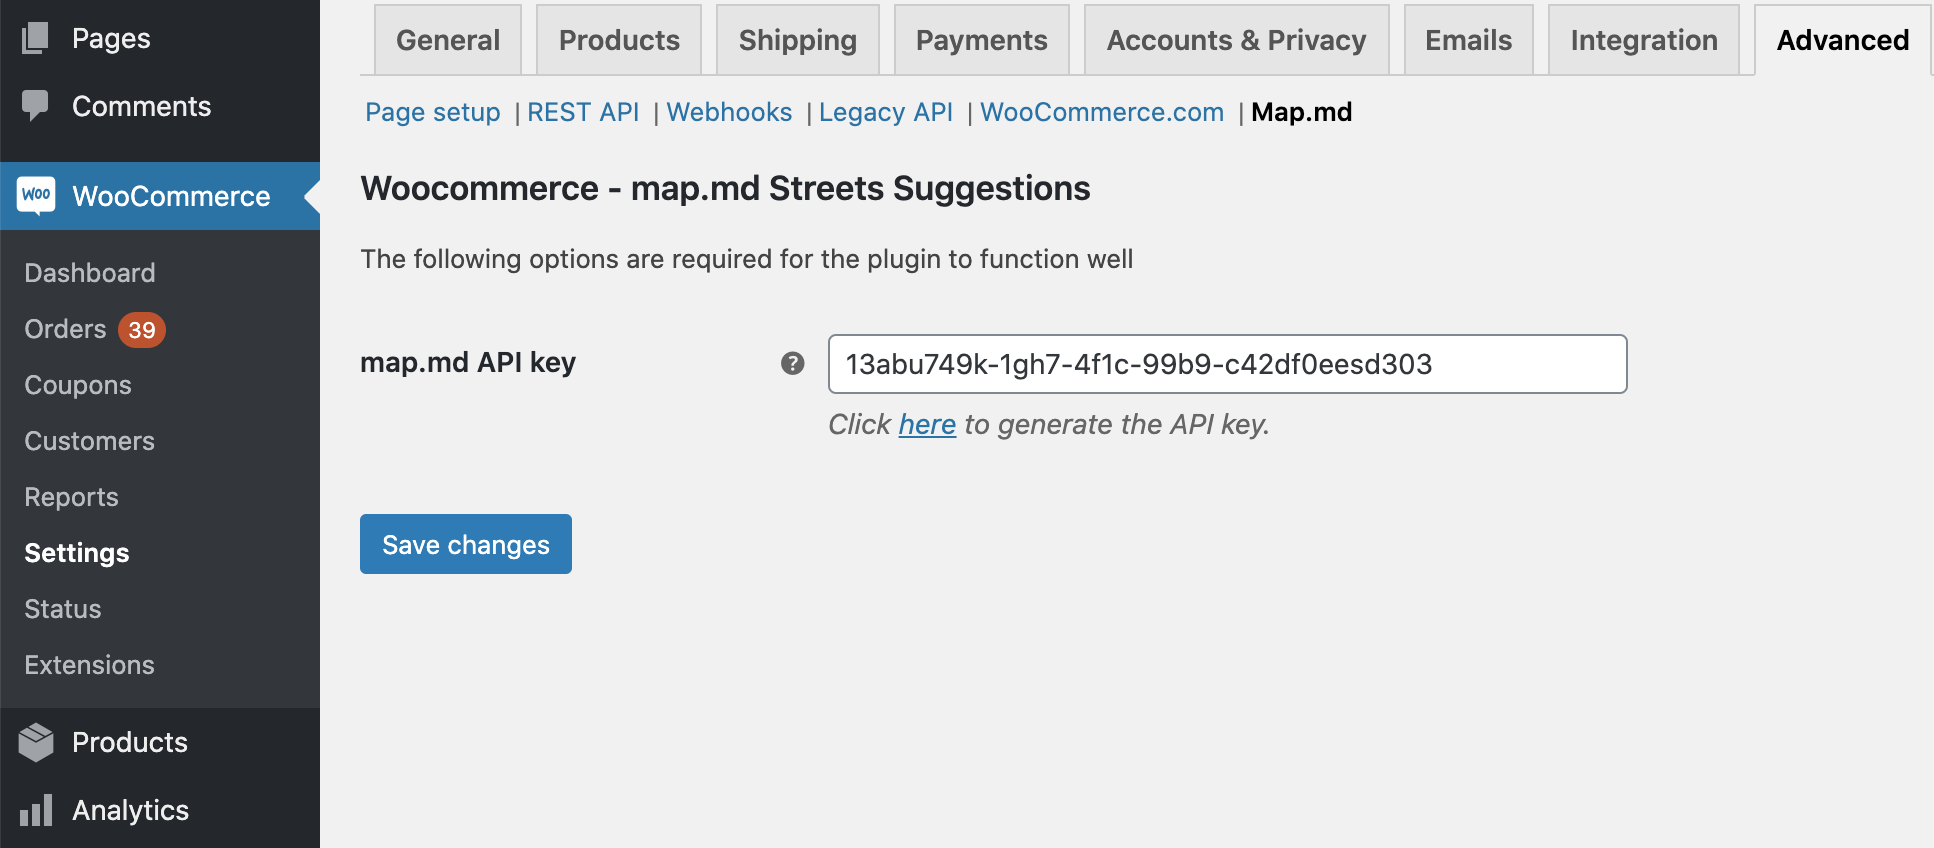 Streets Suggestions via map.md for WooCommerce